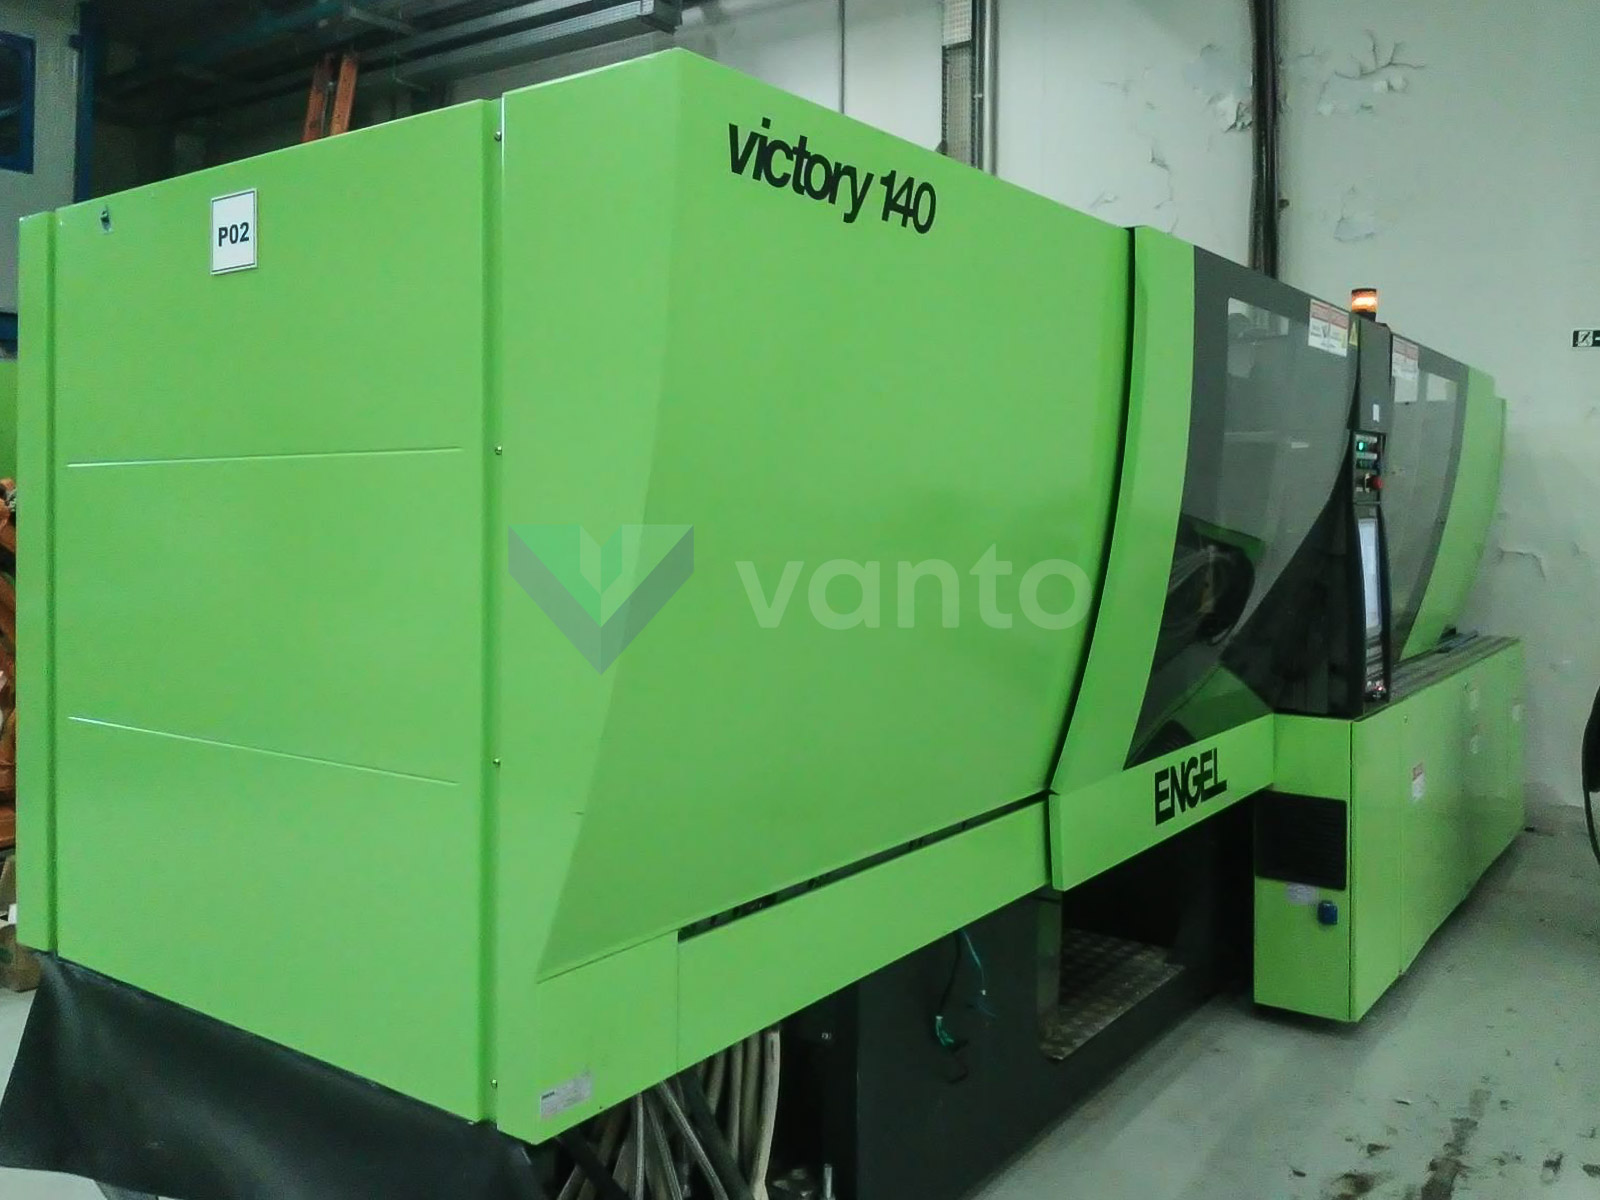 ENGEL VICTORY 330H / 80W 140 COMBI 140t injection molding machine (2014) id10425